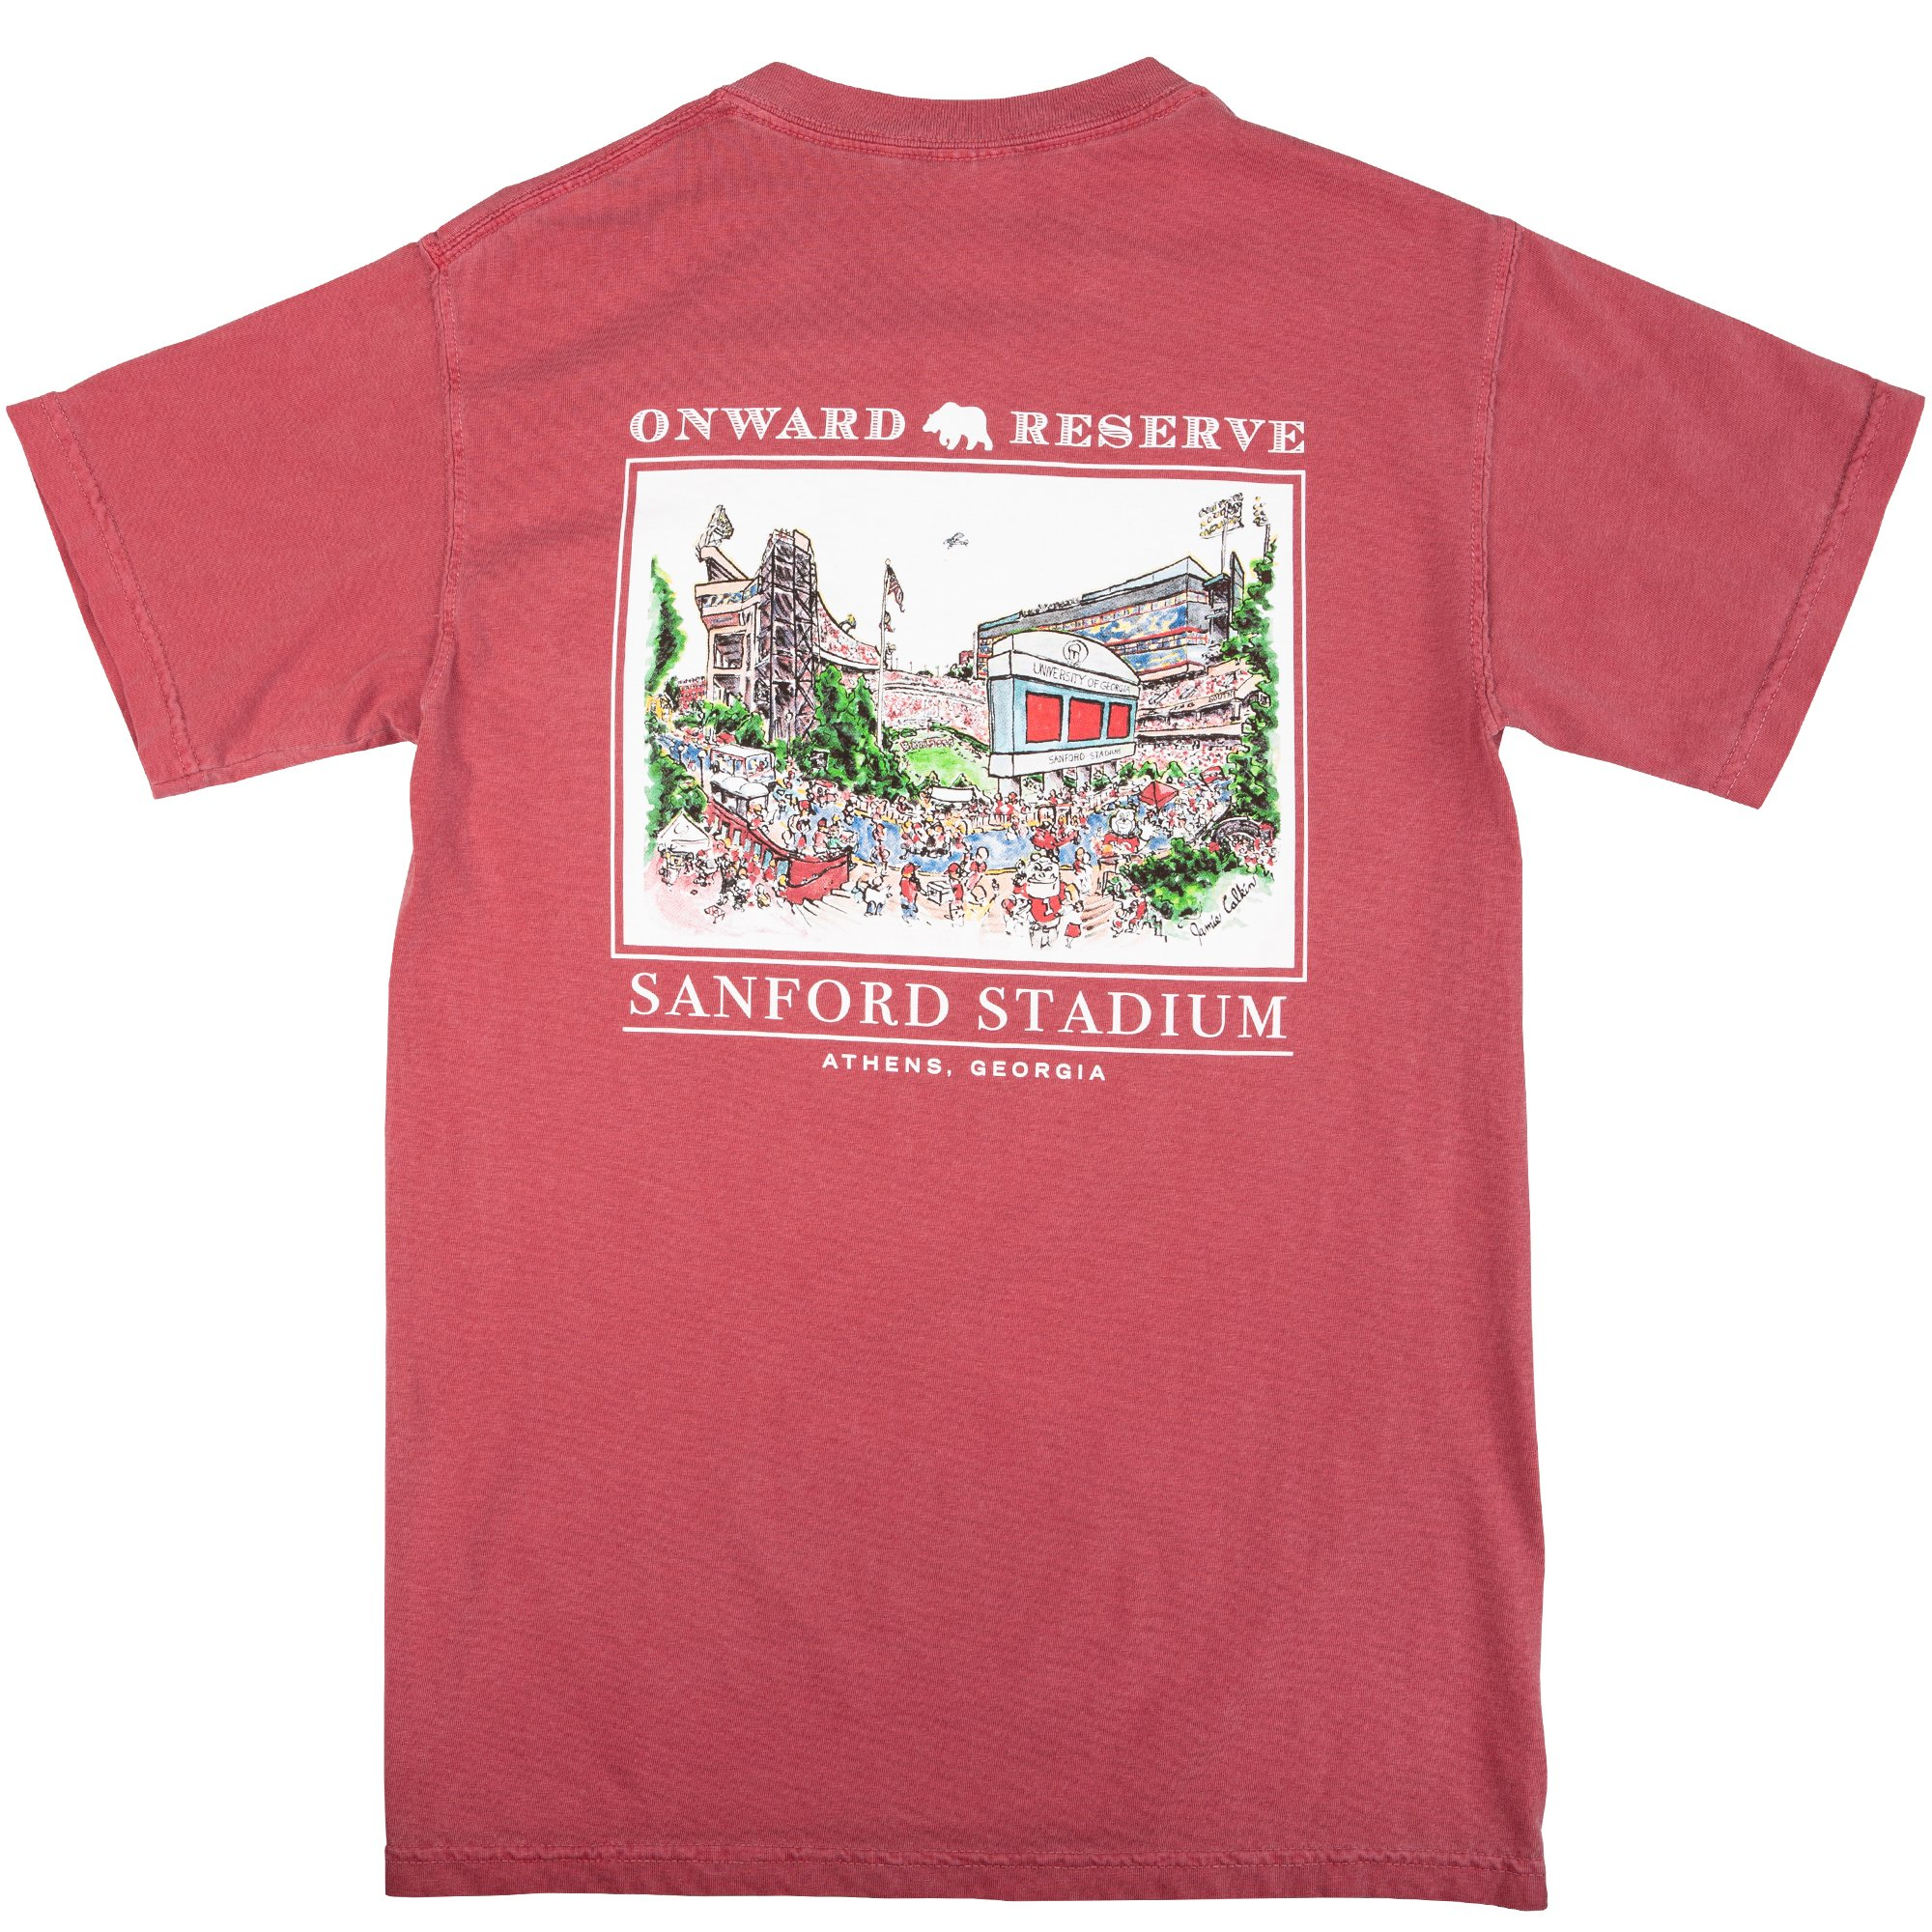 OR-Jamie-Tee-SS-Sanford-Stadium-Brick-Back.jpg